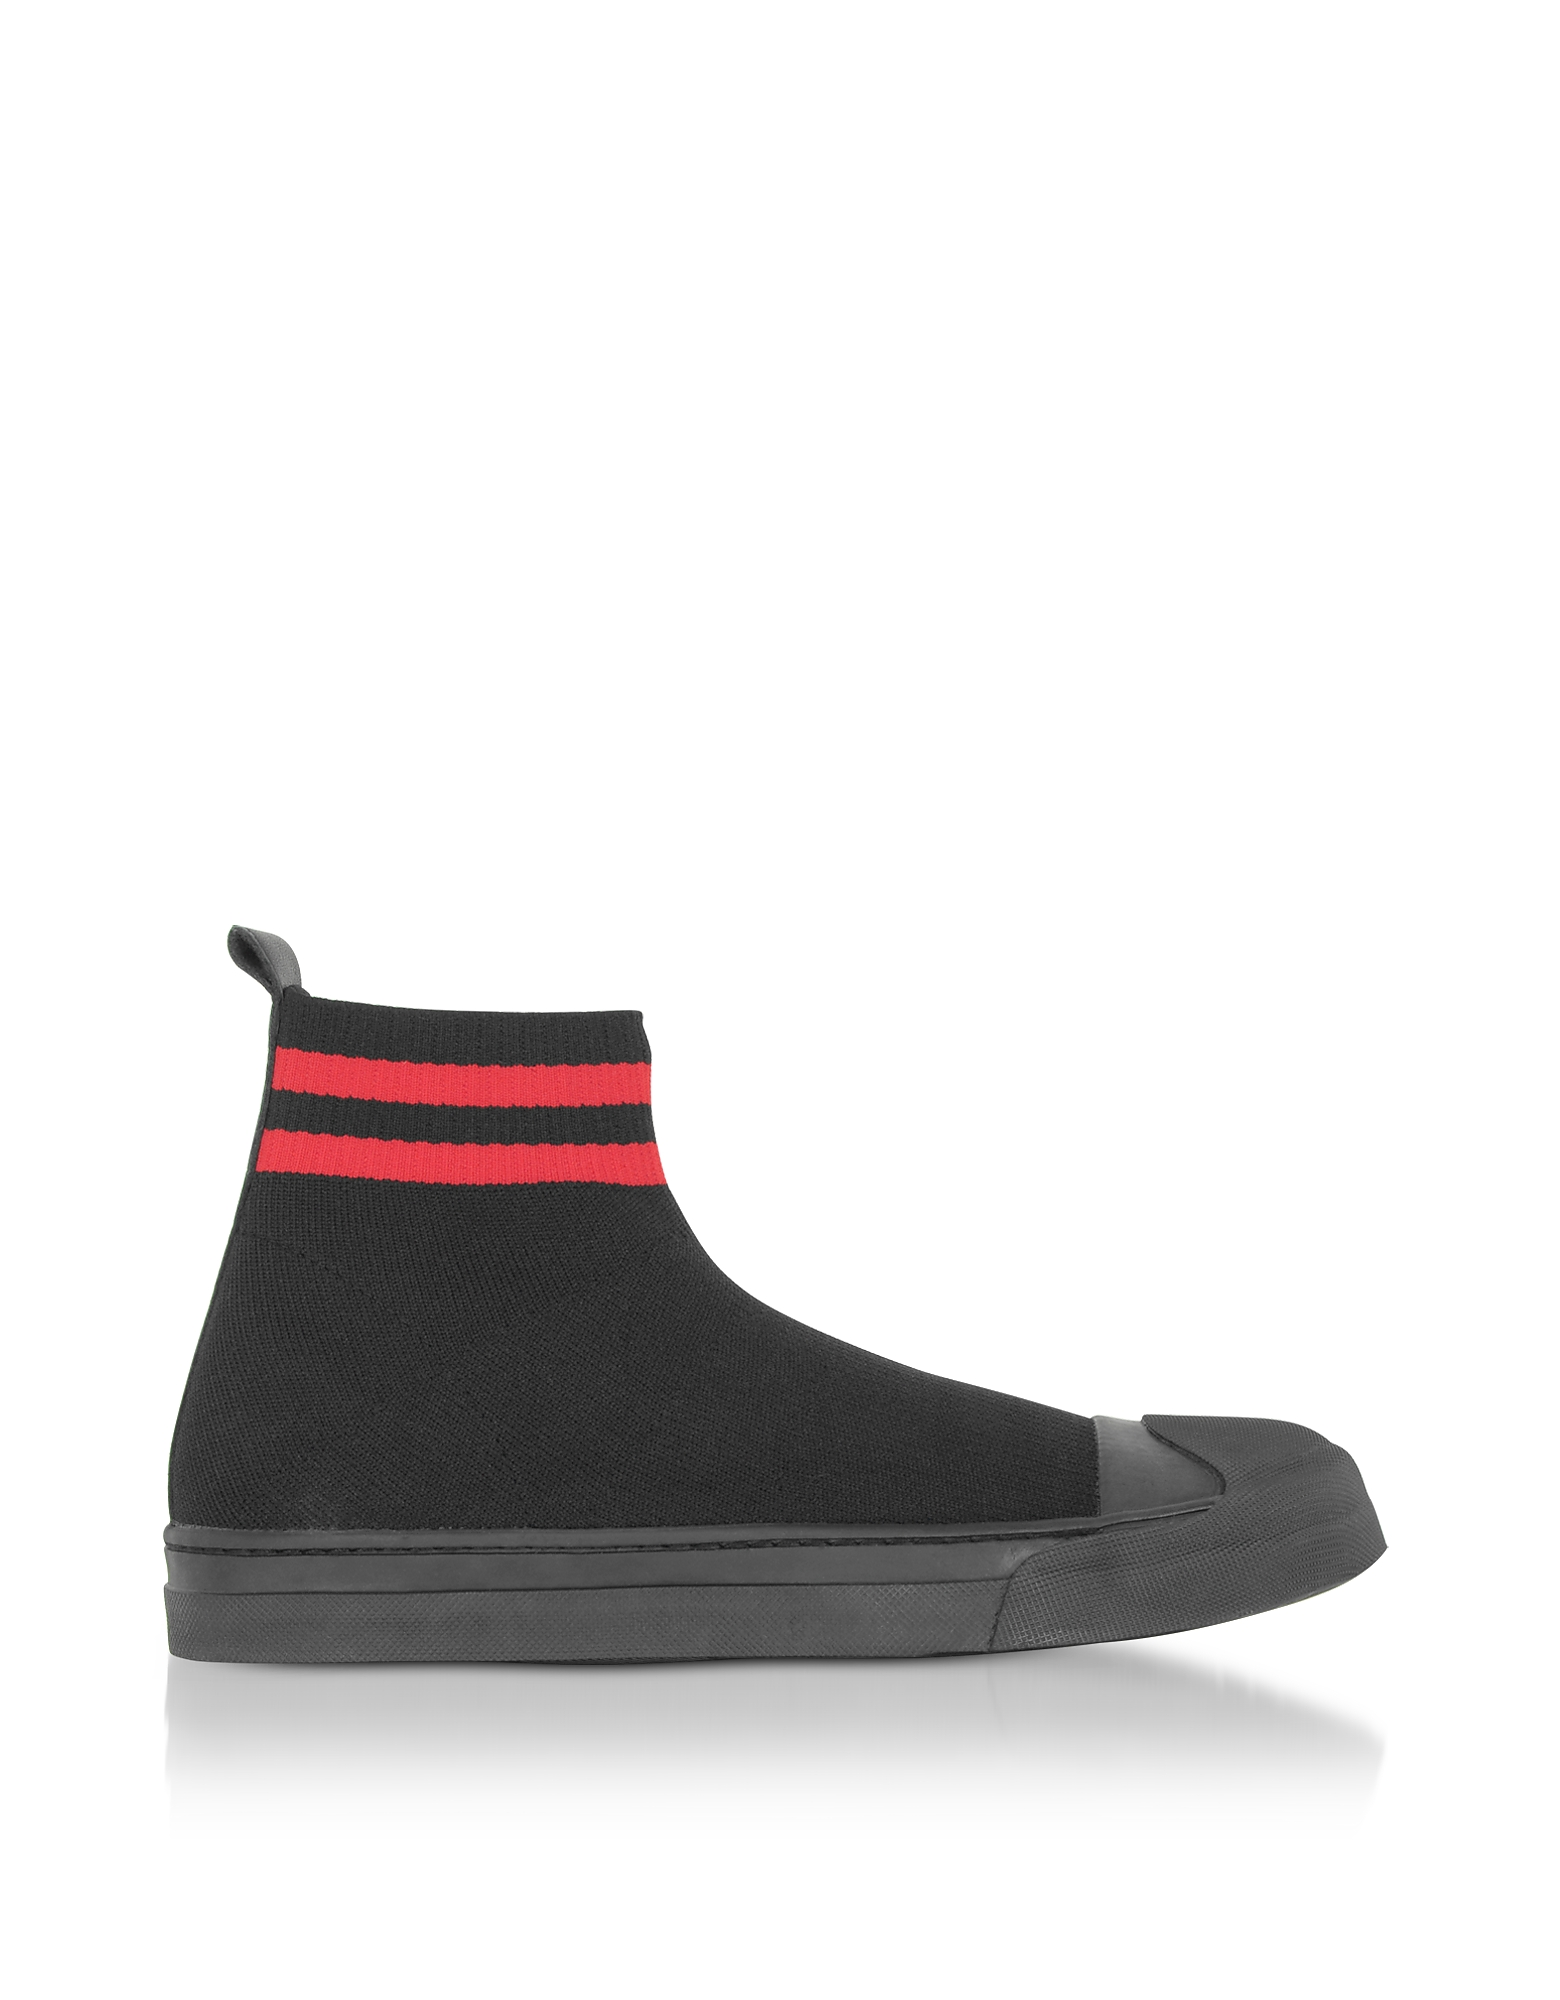 Image of Neil Barrett Designer Shoes, Black/Red Tech Knit Fabric Skater Boots